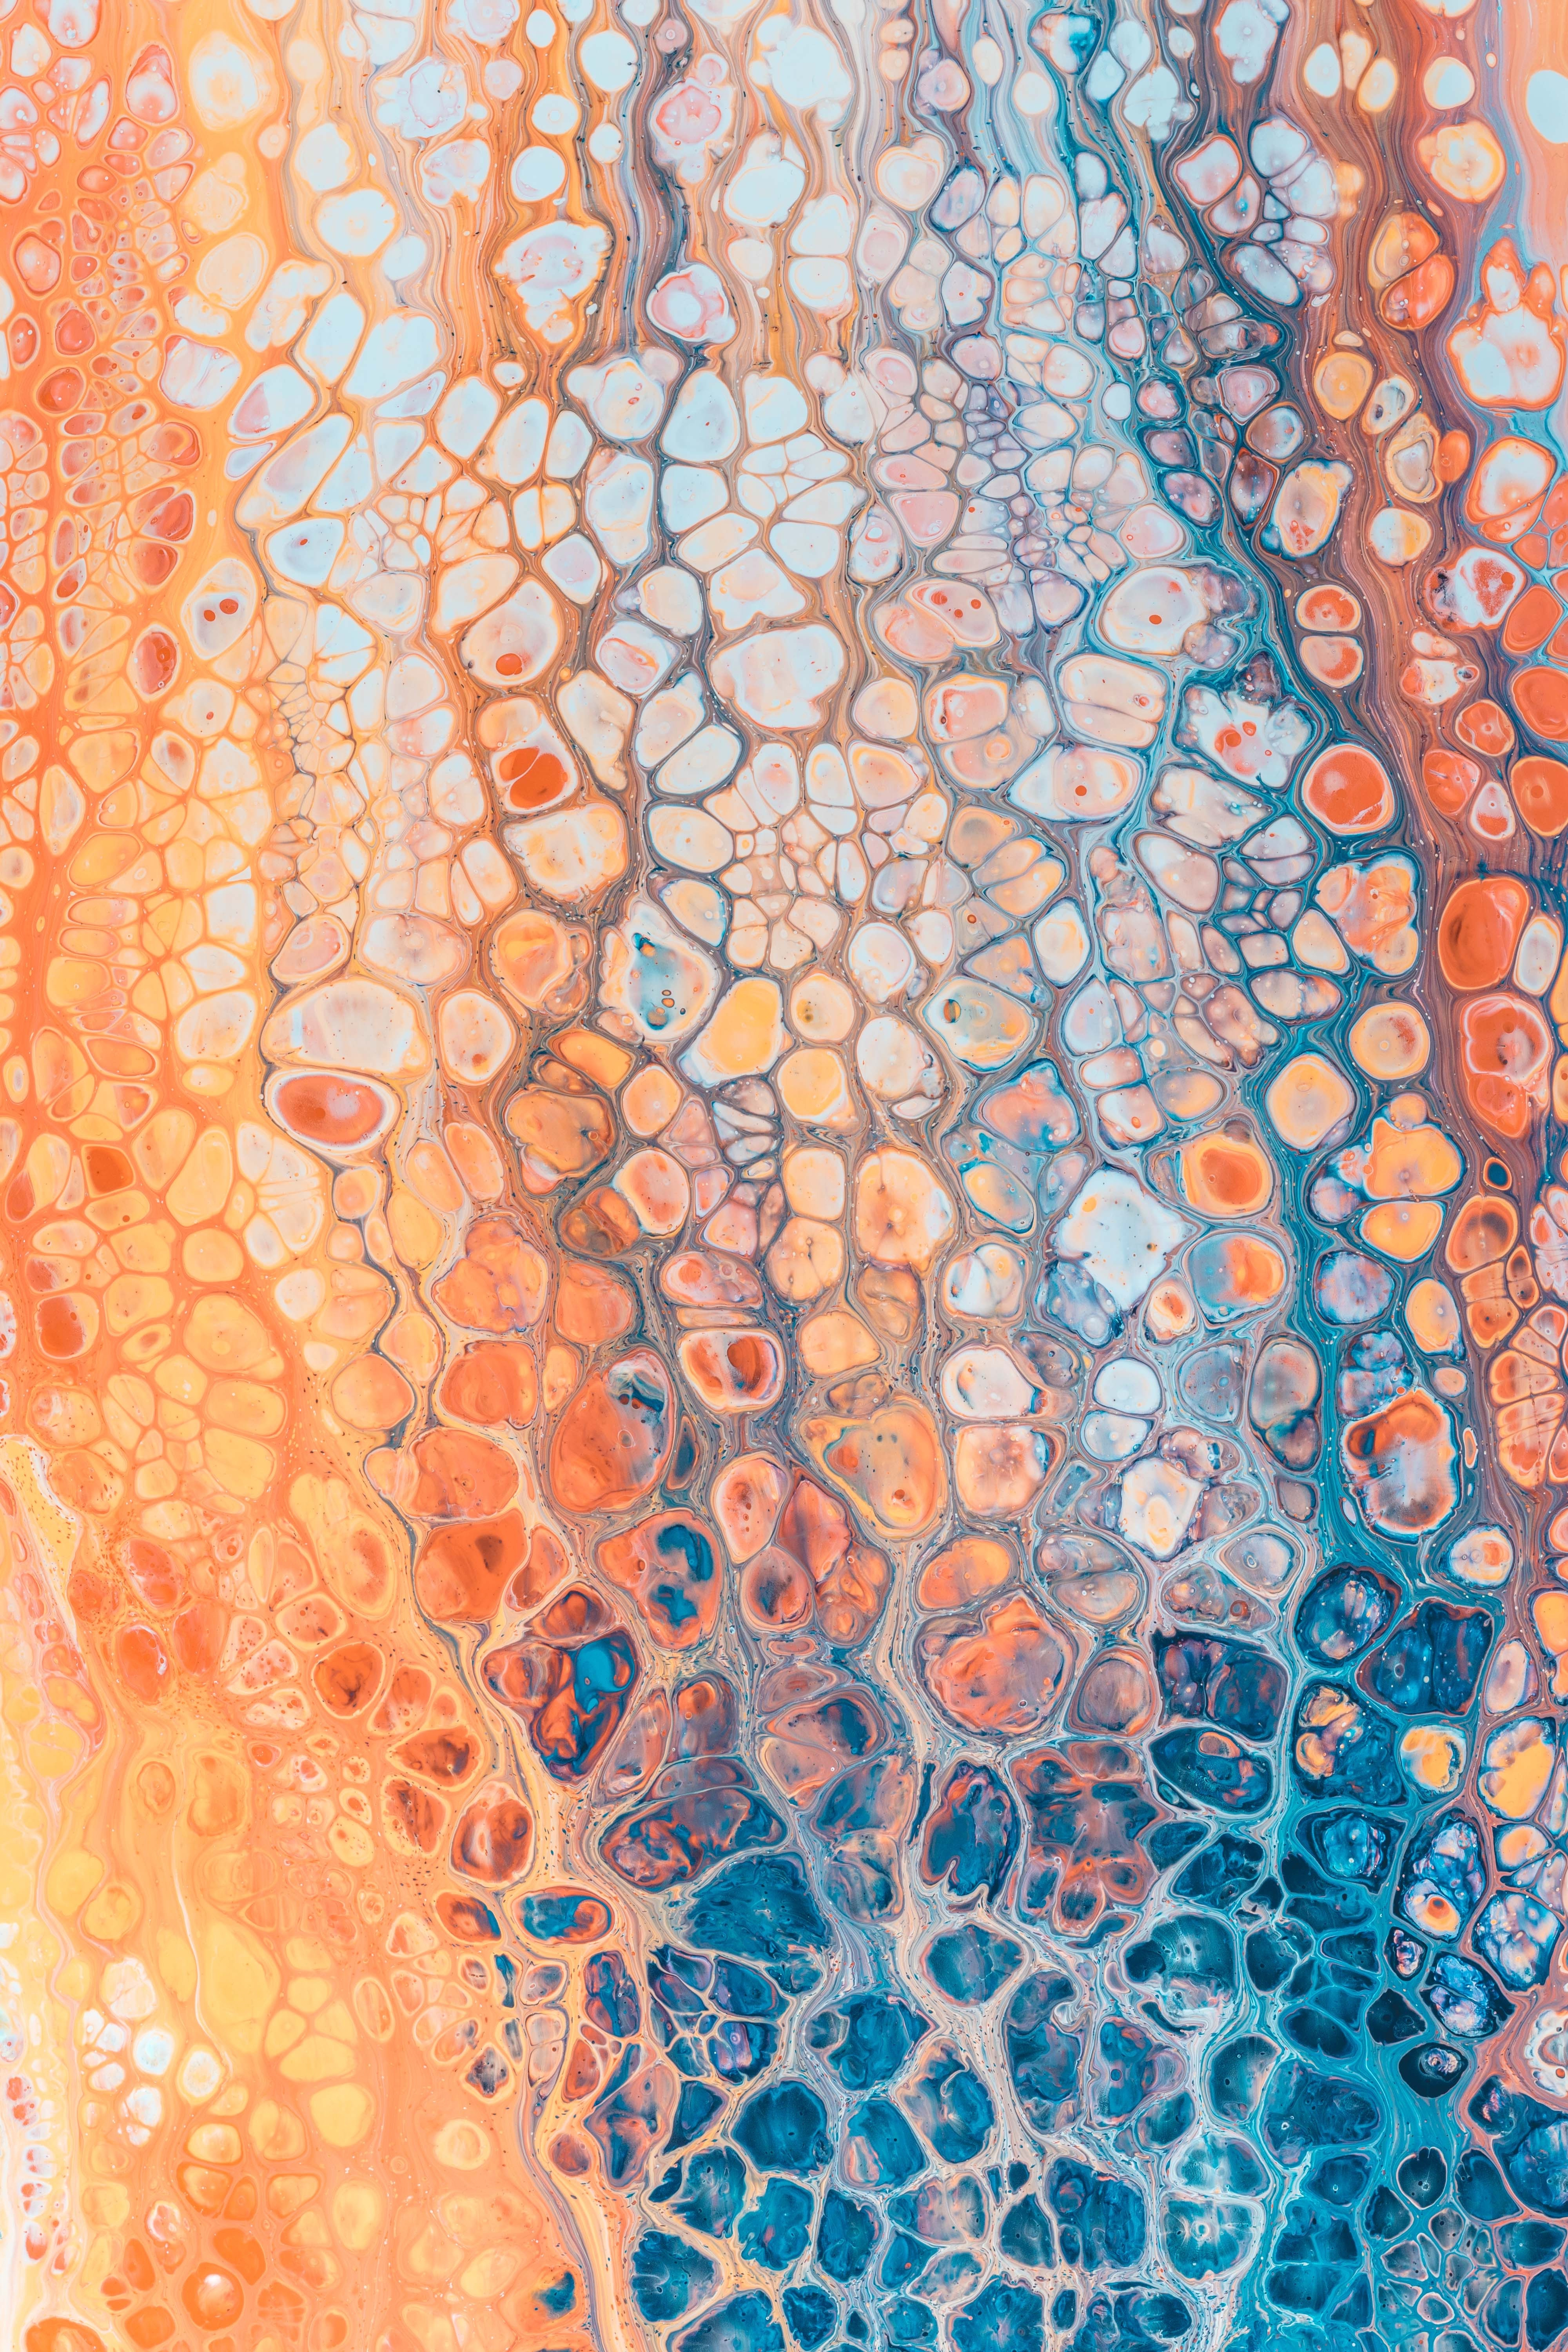 130737 download wallpaper Abstract, Paint, Stains, Spots, Surface, Bubbles screensavers and pictures for free